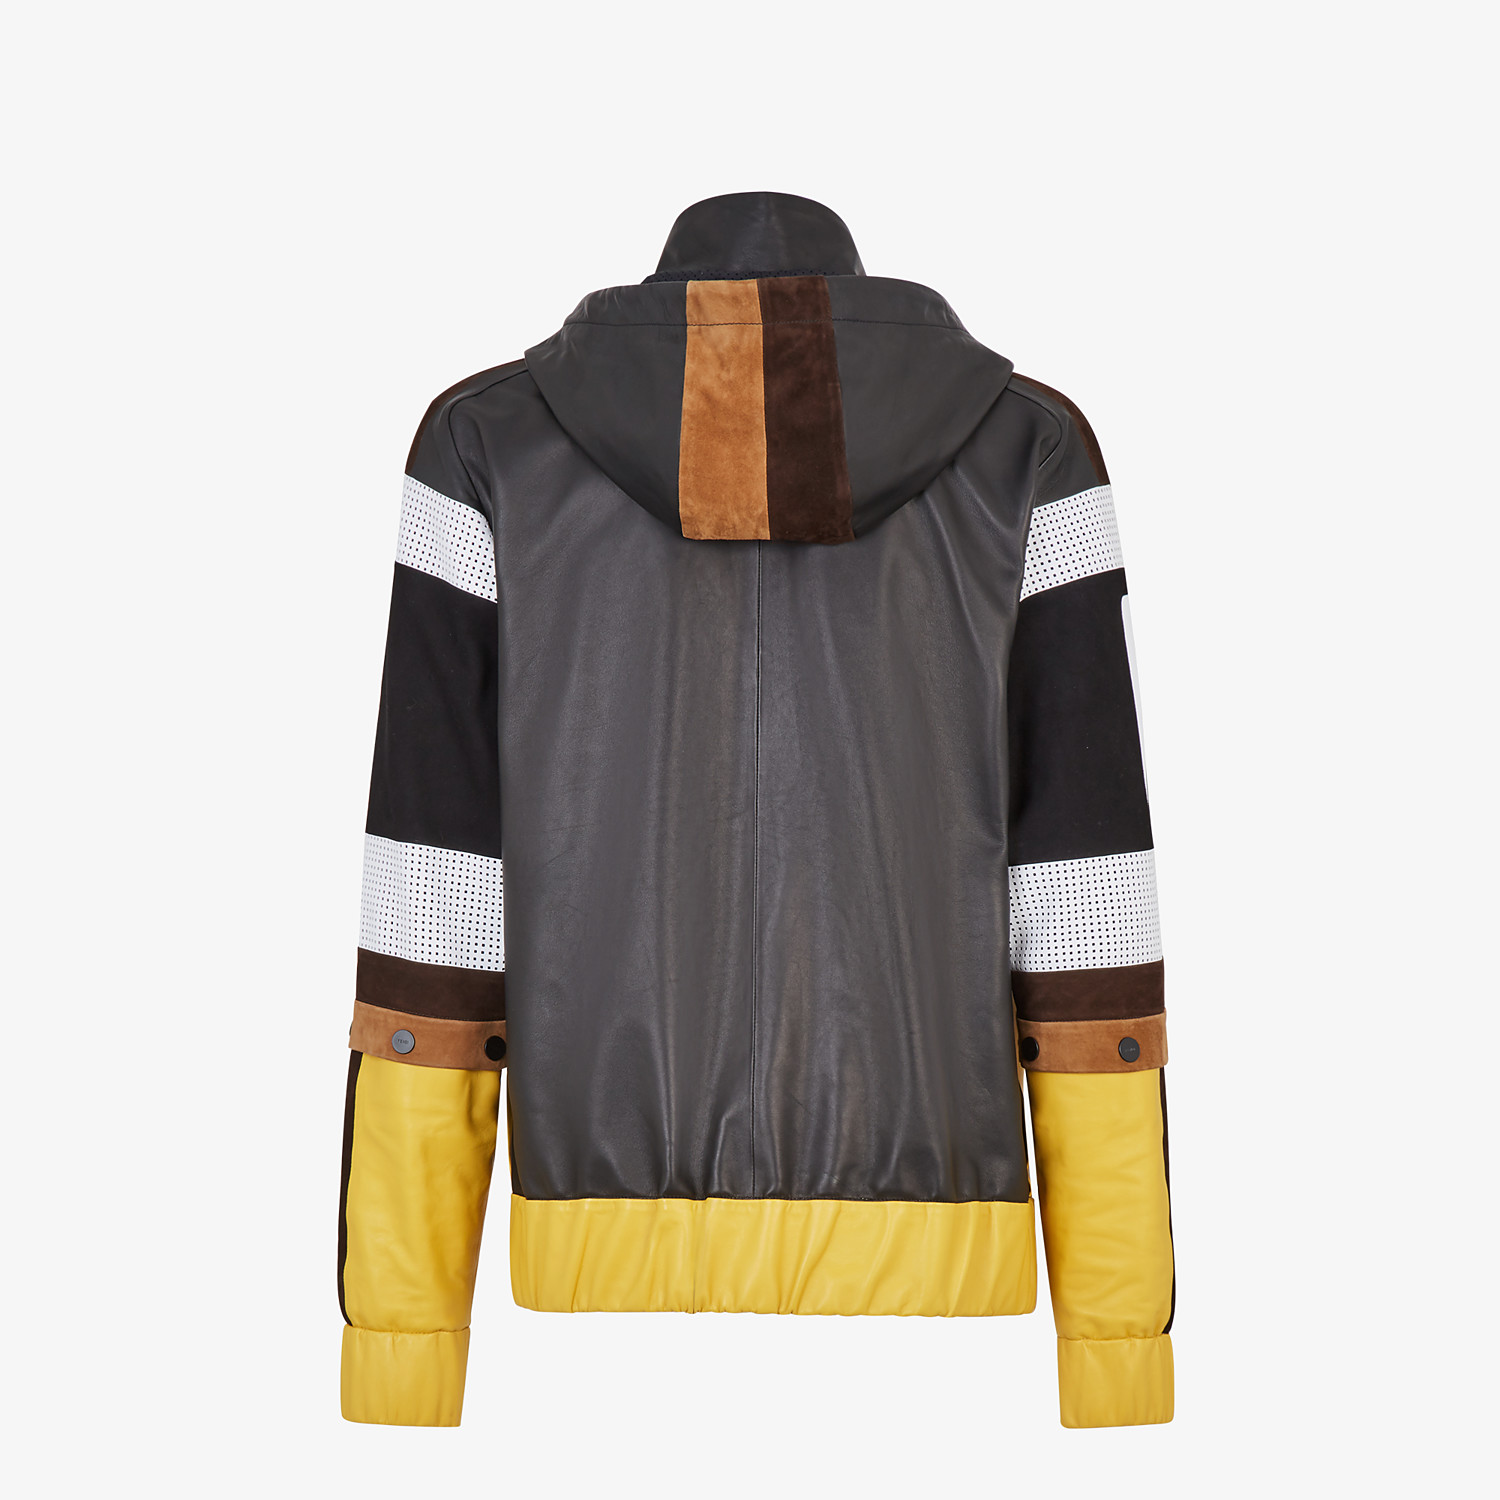 FENDI JACKET - Multicolour leather and suede jacket - view 2 detail